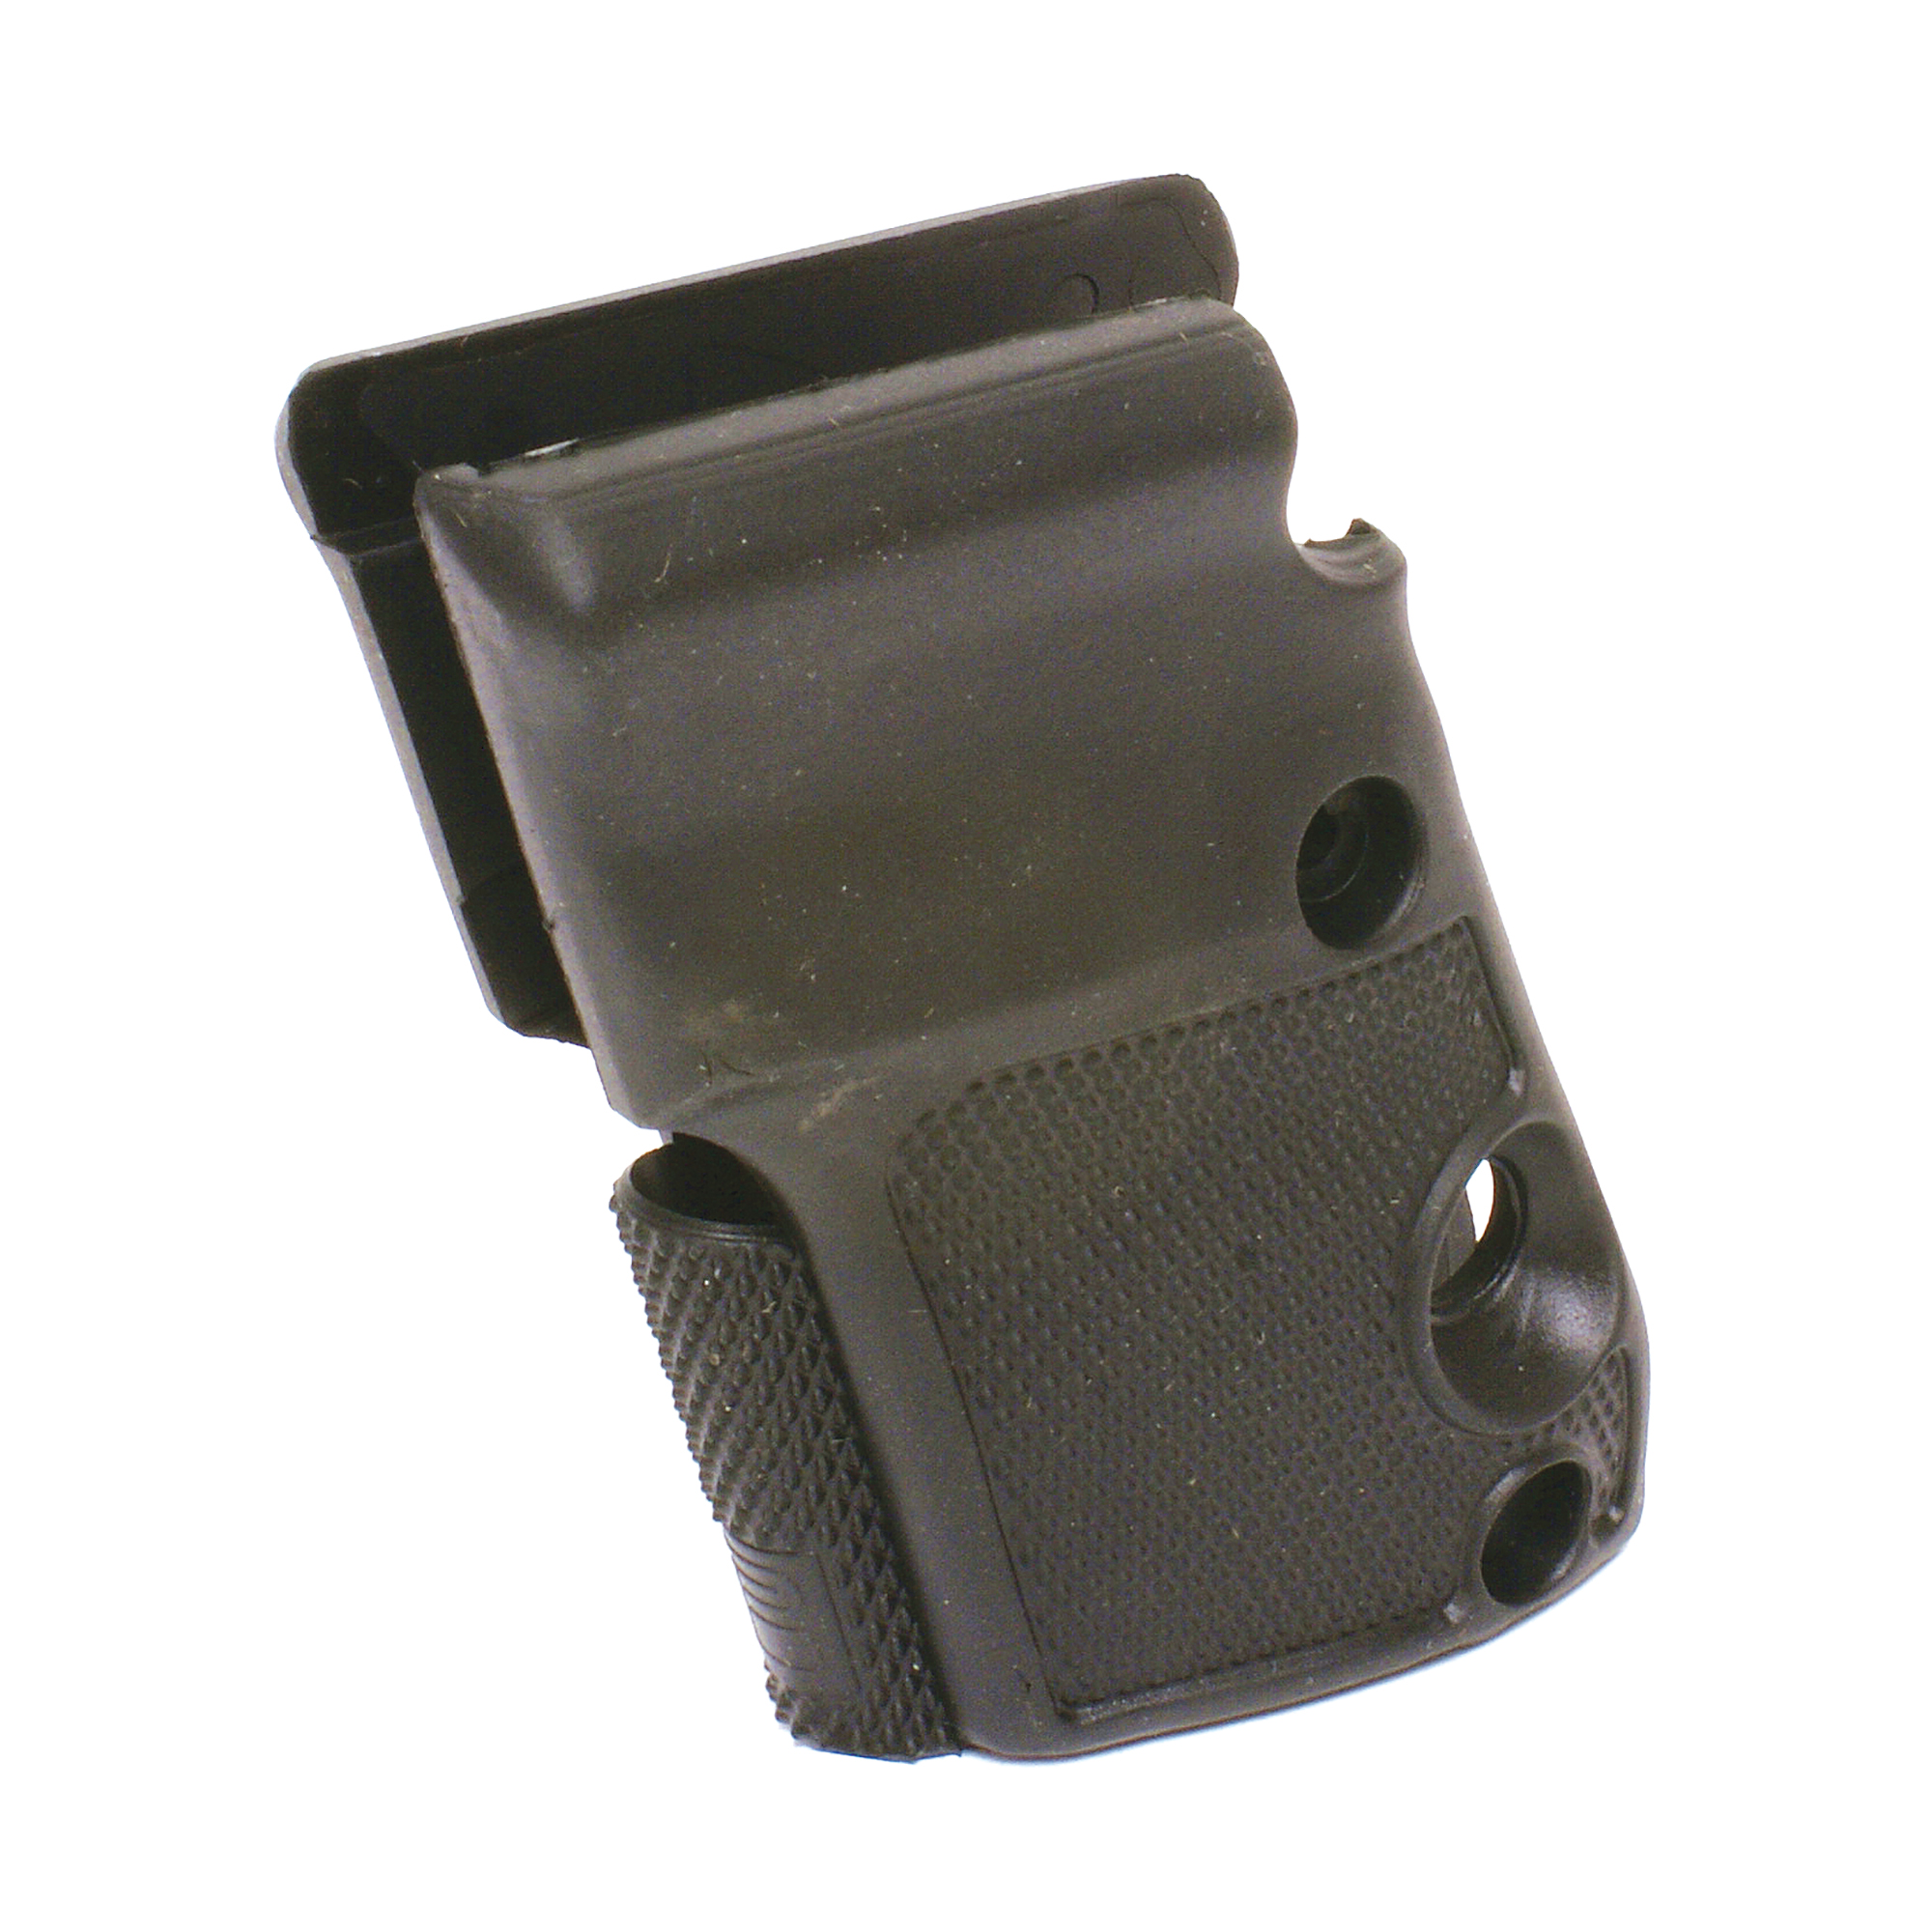 Pearce Grips Beretta Bobcat and Tomcat soft rubber wrap-around grips are made with moderate palm swells and provide a positive hold for the shooter. Fits Beretta 21A/3032 with standard safety. Not for use on Tomcat models equipped with an extended safety lever.